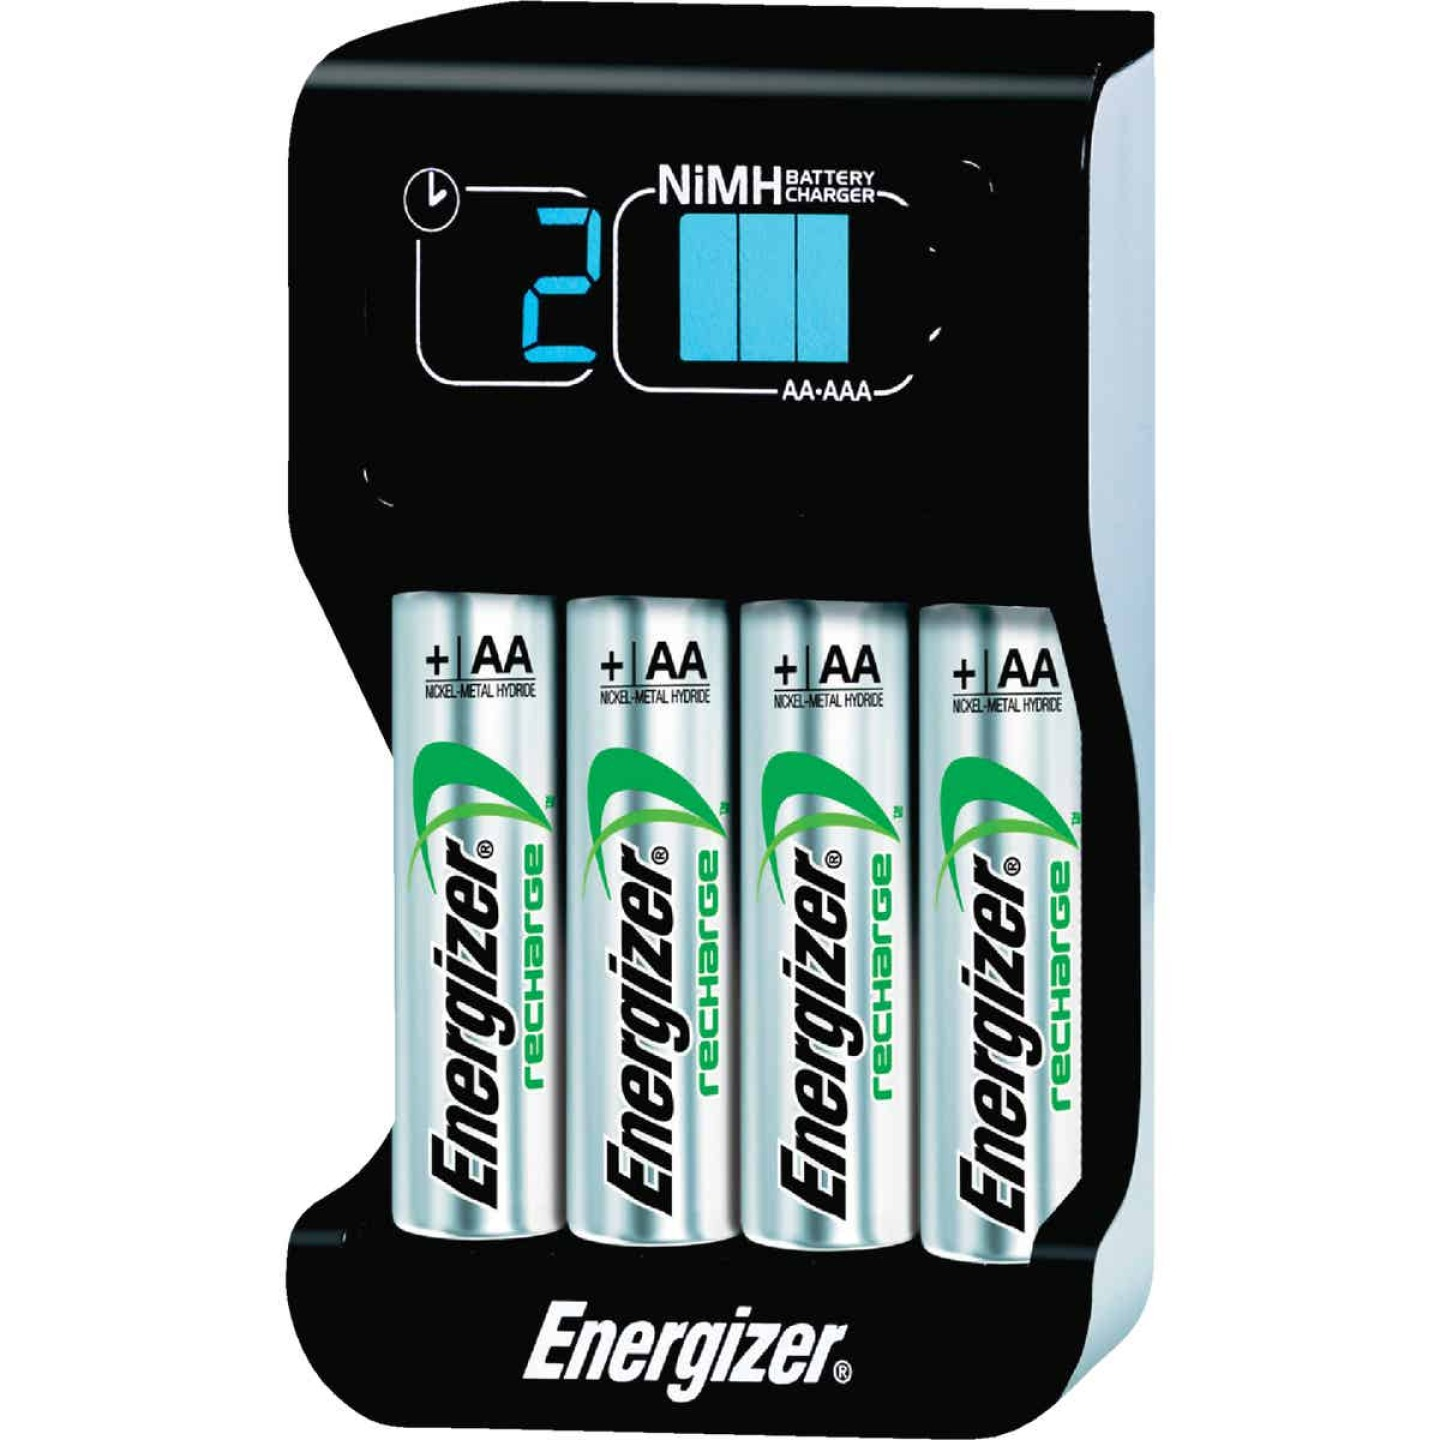 Energizer (2) or (4) AA, or AAA NiMH Smart Battery Charger Image 1